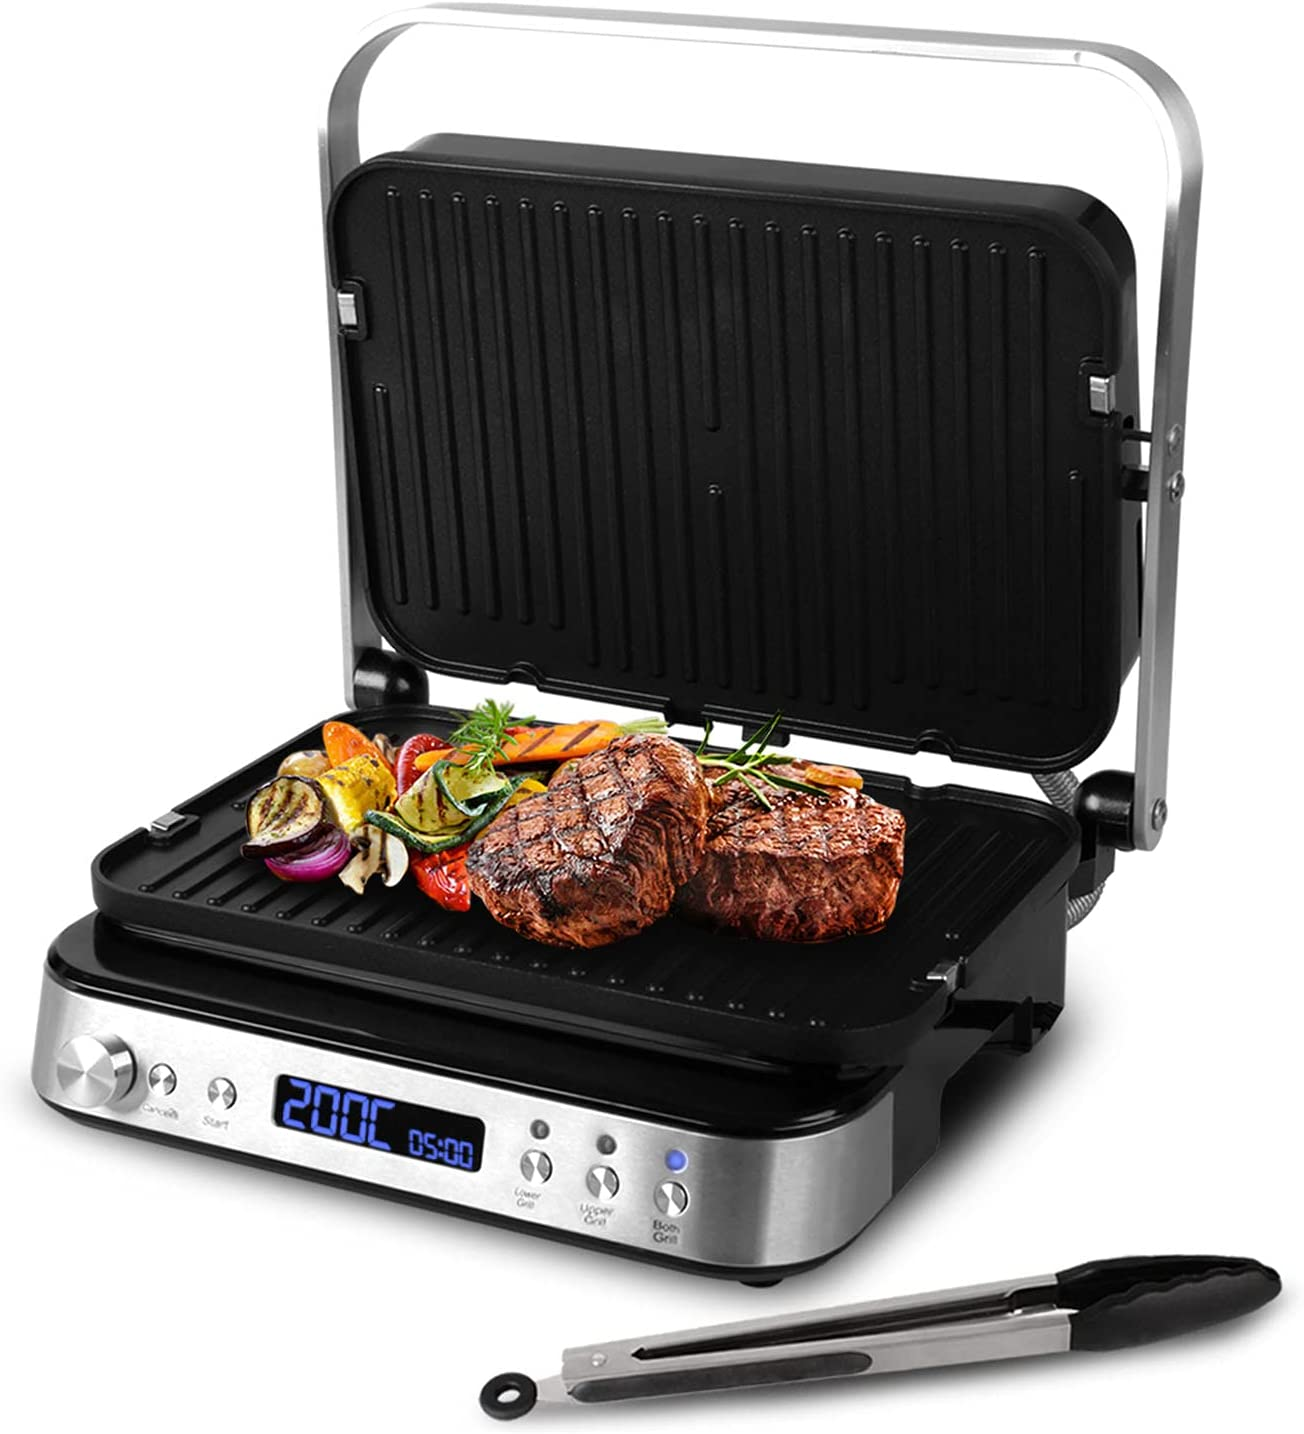 Artestia Electric Indoor Searing Grill-Electric Griddler of Cook 2021 autumn and winter new Inventory cleanup selling sale